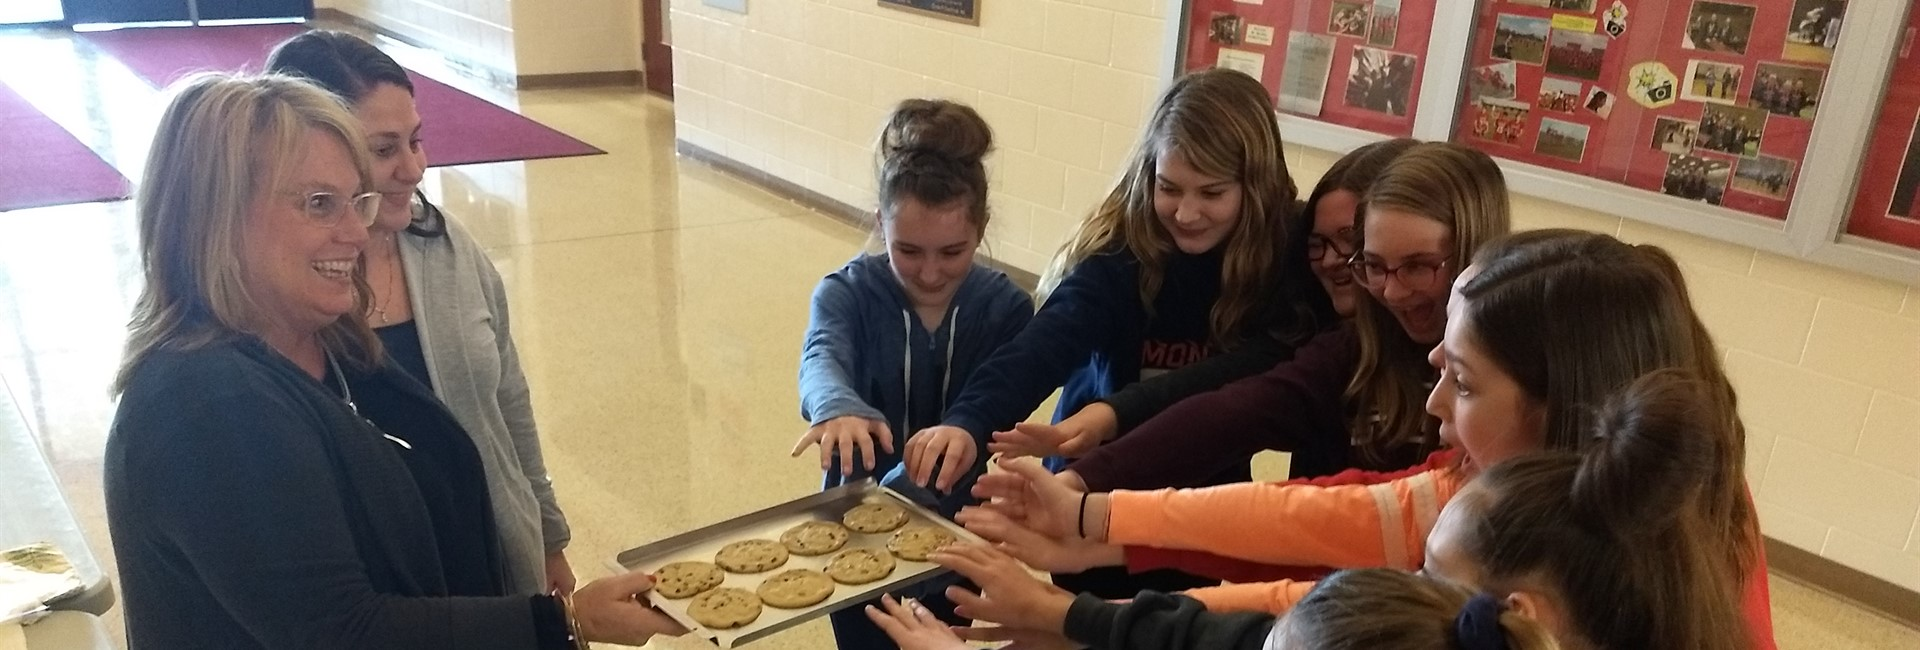 KVMS March Cookie Day